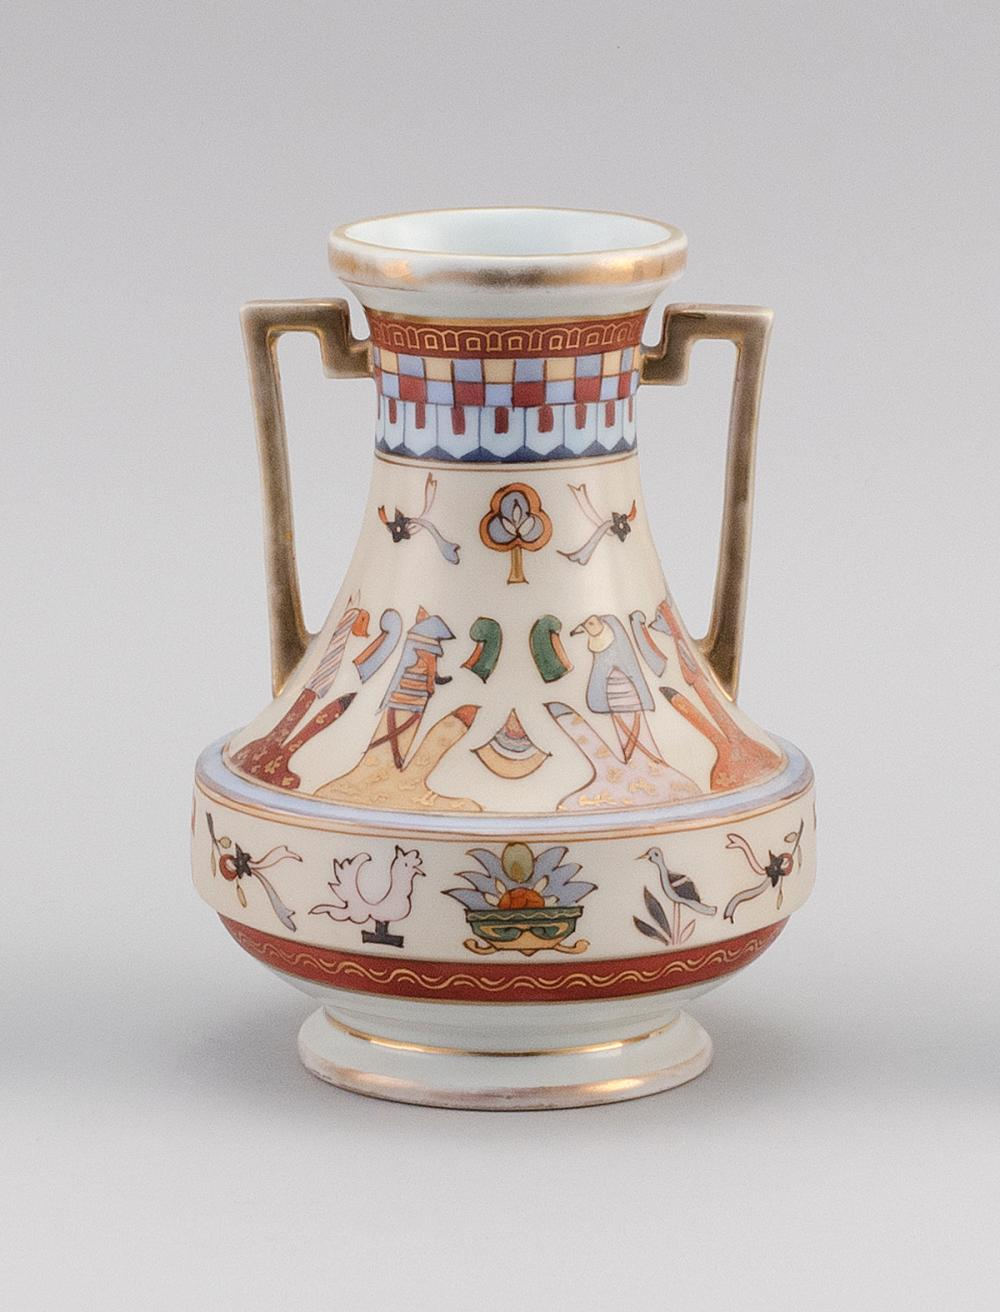 NIPPON PORCELAIN VASE In waisted form, with geometric handles and decoration of Egyptian motifs. Van Patten #47 mark on base. Height...